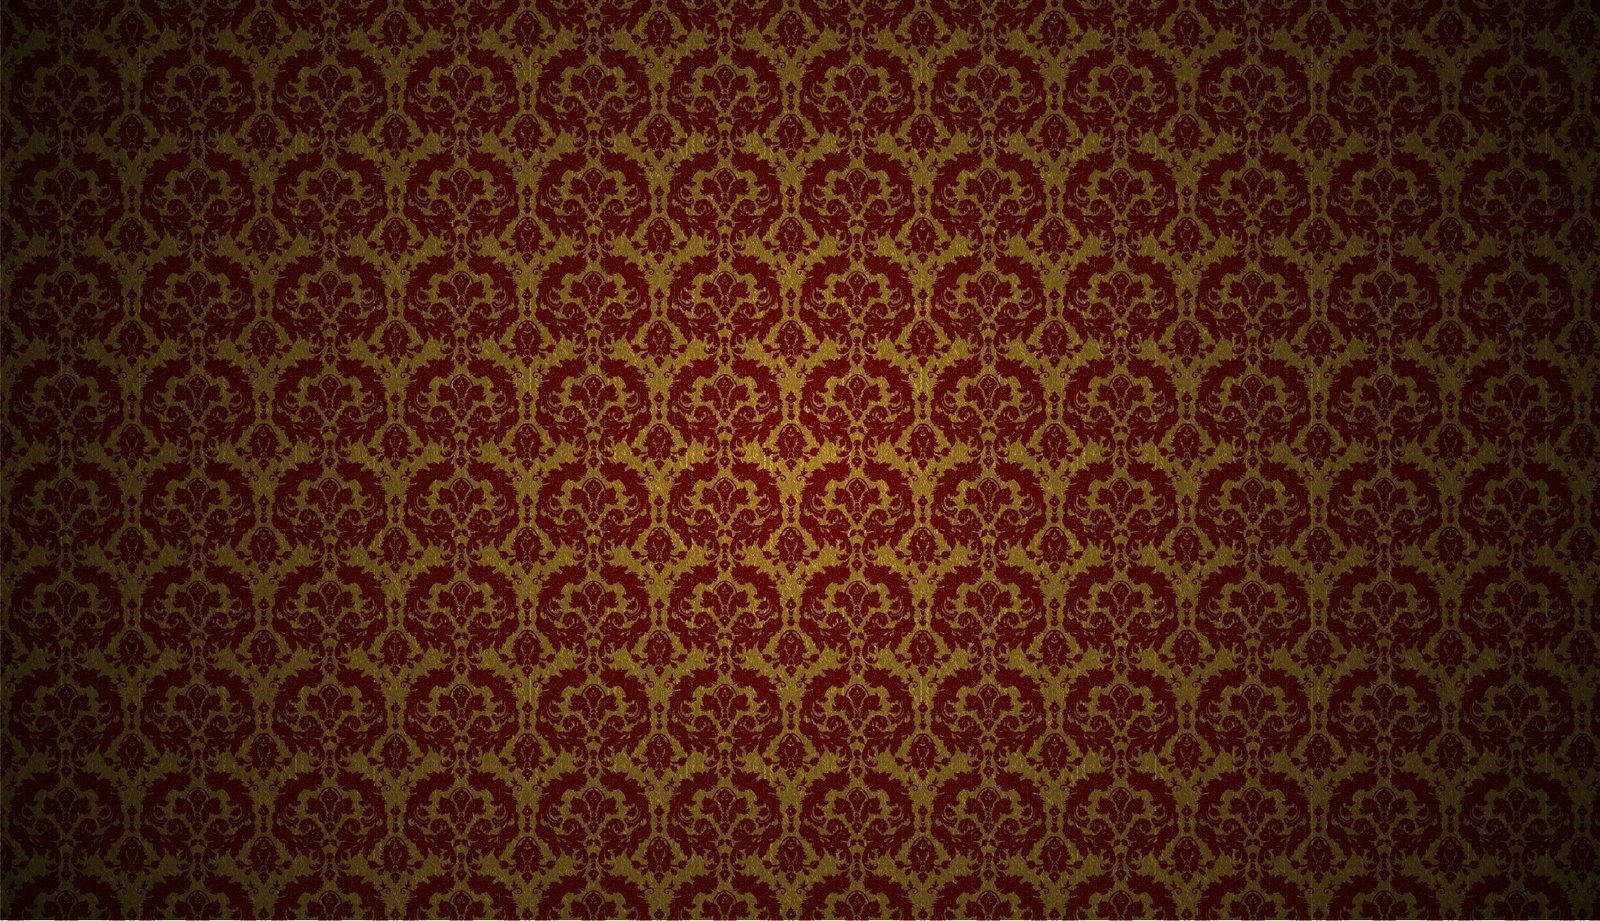 red and gold damask wallpaper by mt schorsch customization wallpaper 1600x921